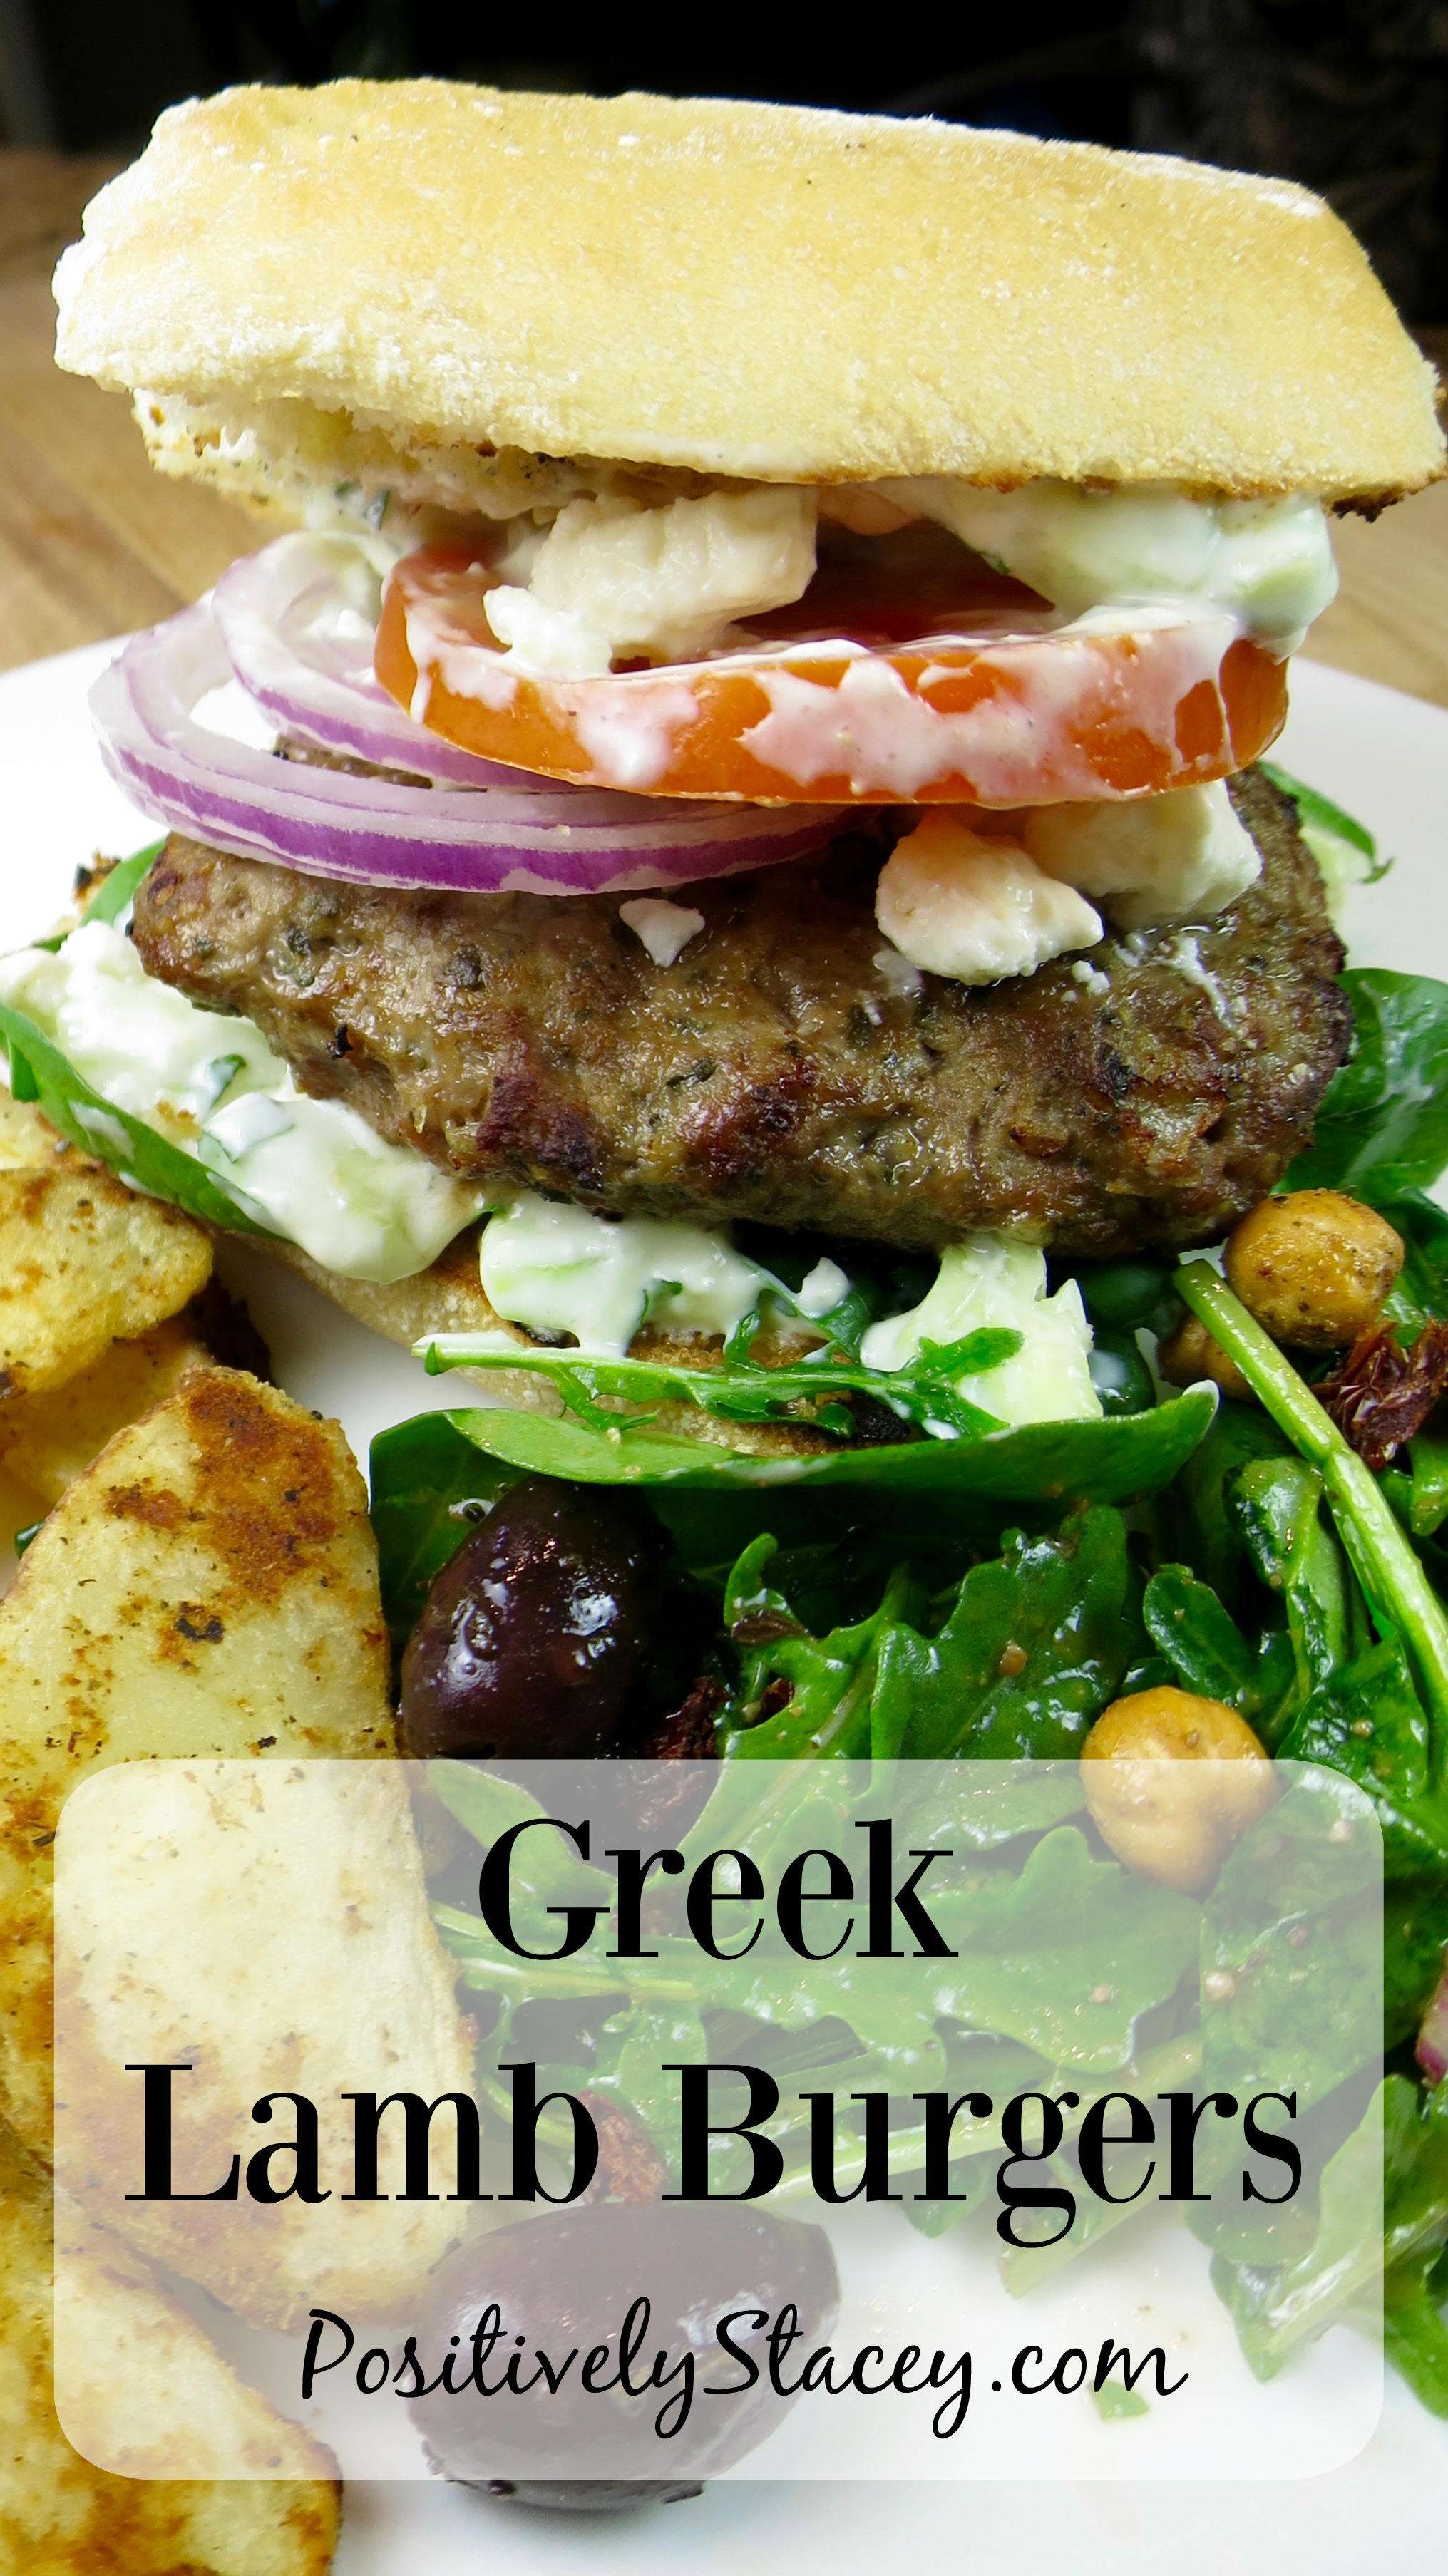 This recipe is full of flavor! The lamb is mixed with mint, onion, and loads of Mediterranean goodness. Greek Lamb Burger Recipe - Delicious!